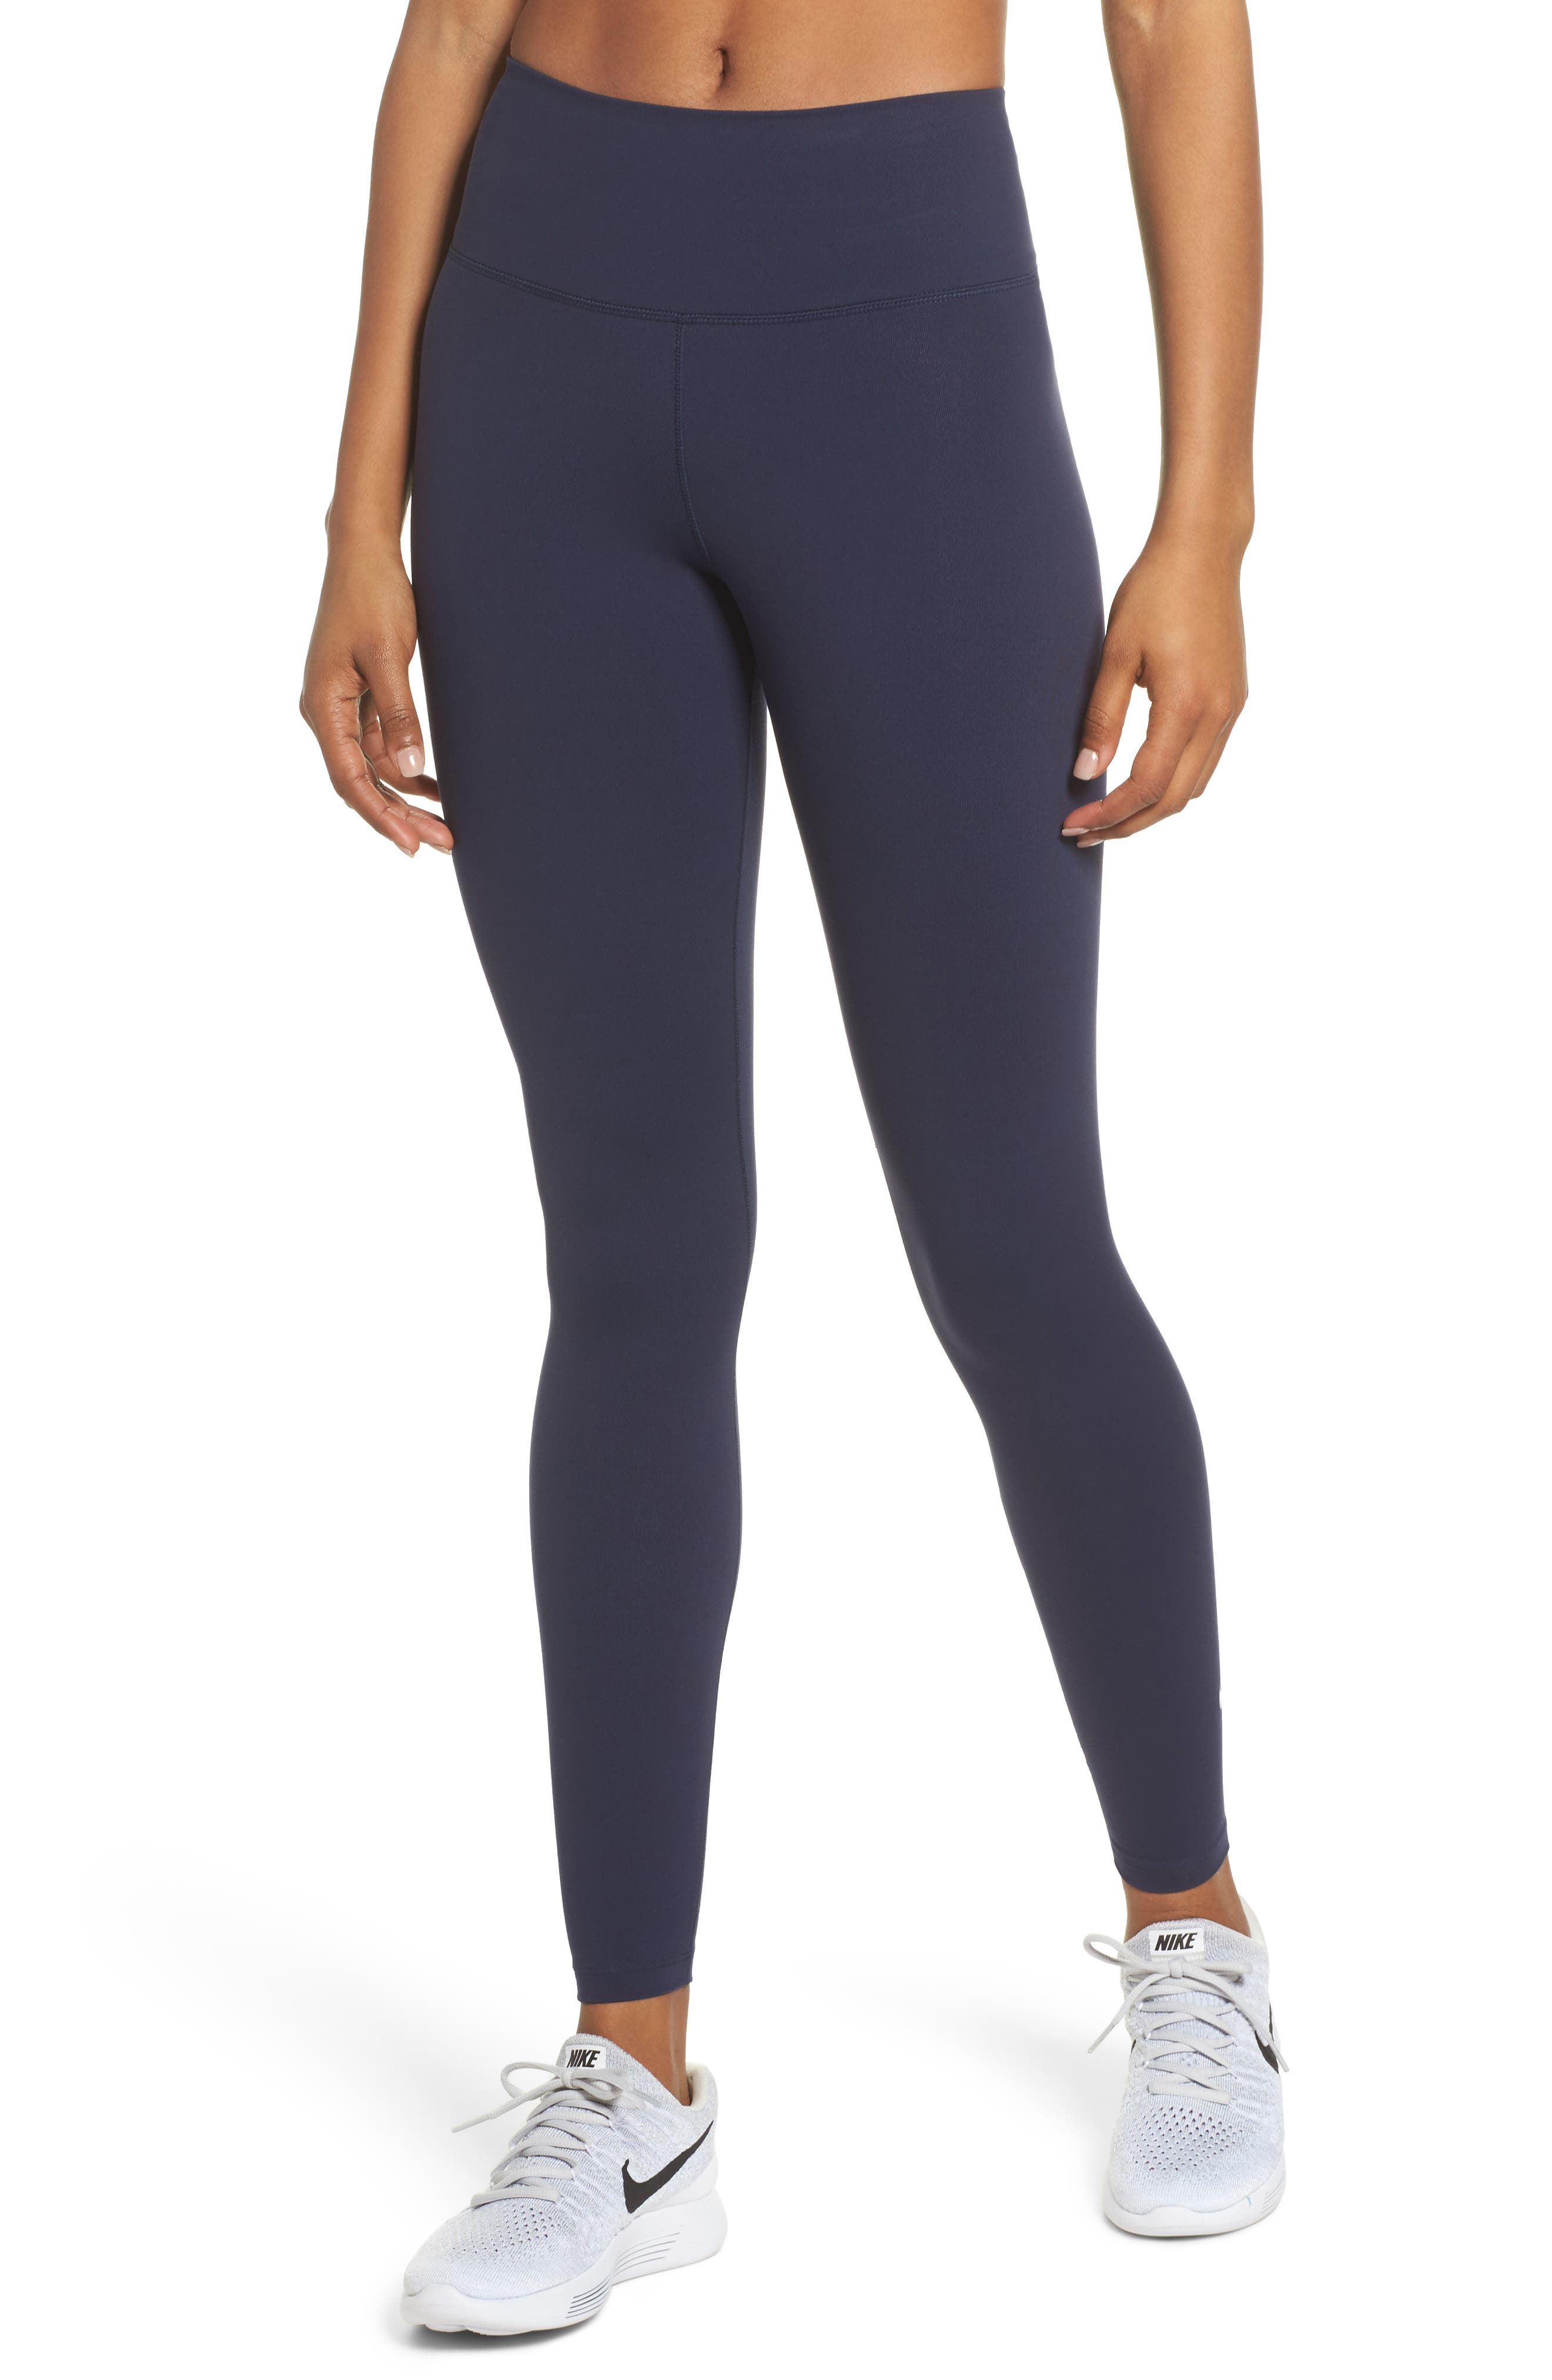 Sculpt Lux Training Tights,                             Main thumbnail 1, color,                             Obsidian/Clear